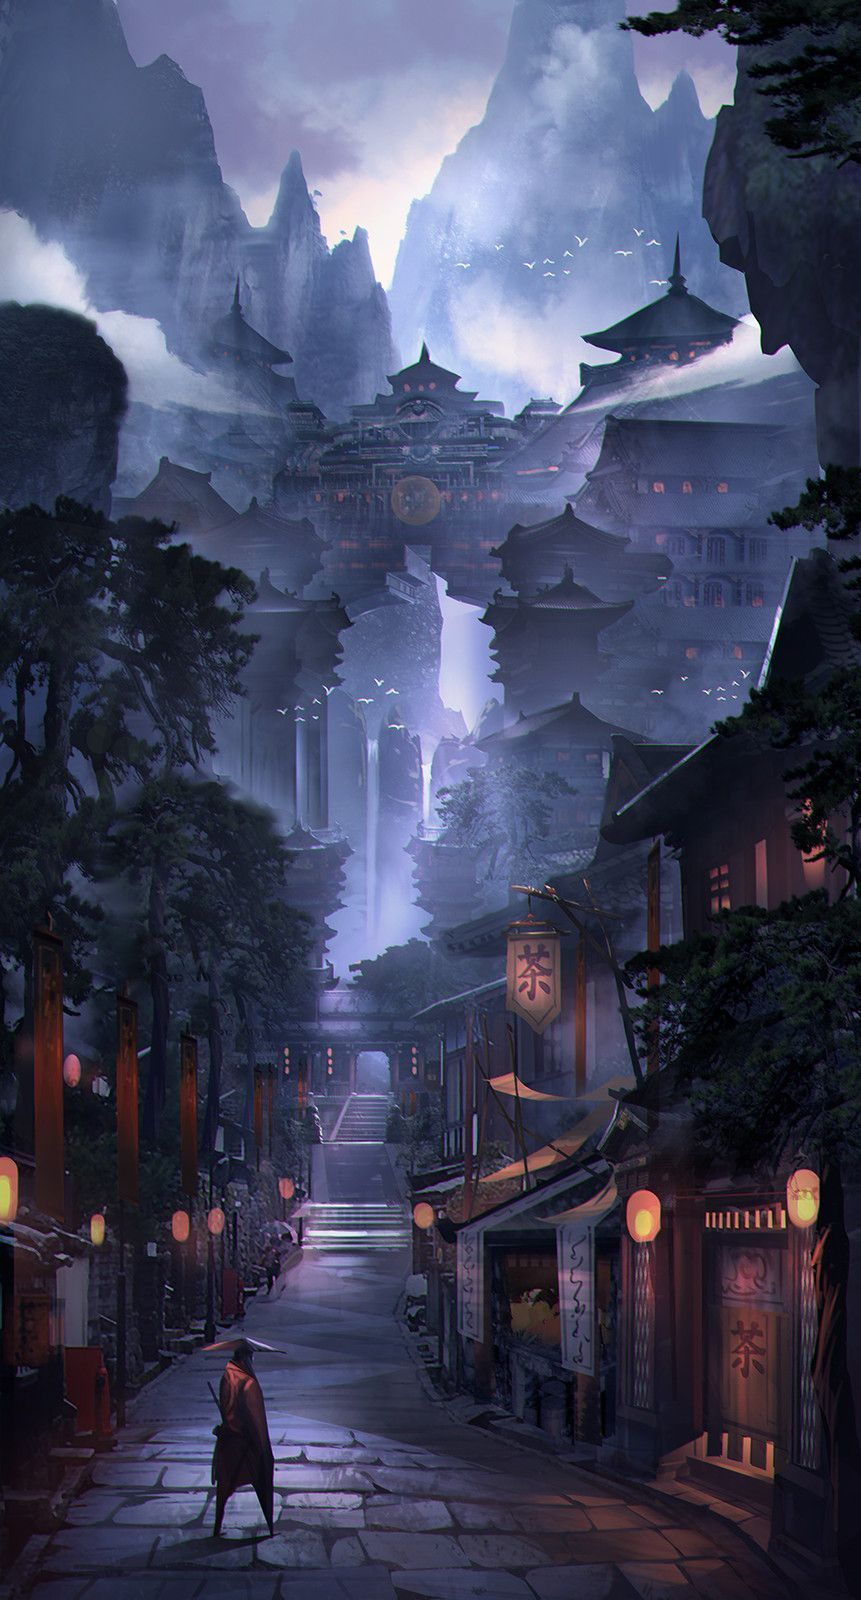 Photo of 2 Wencheng Y on ArtStation at www.artst  | Android Wallpaper  #android #artst #